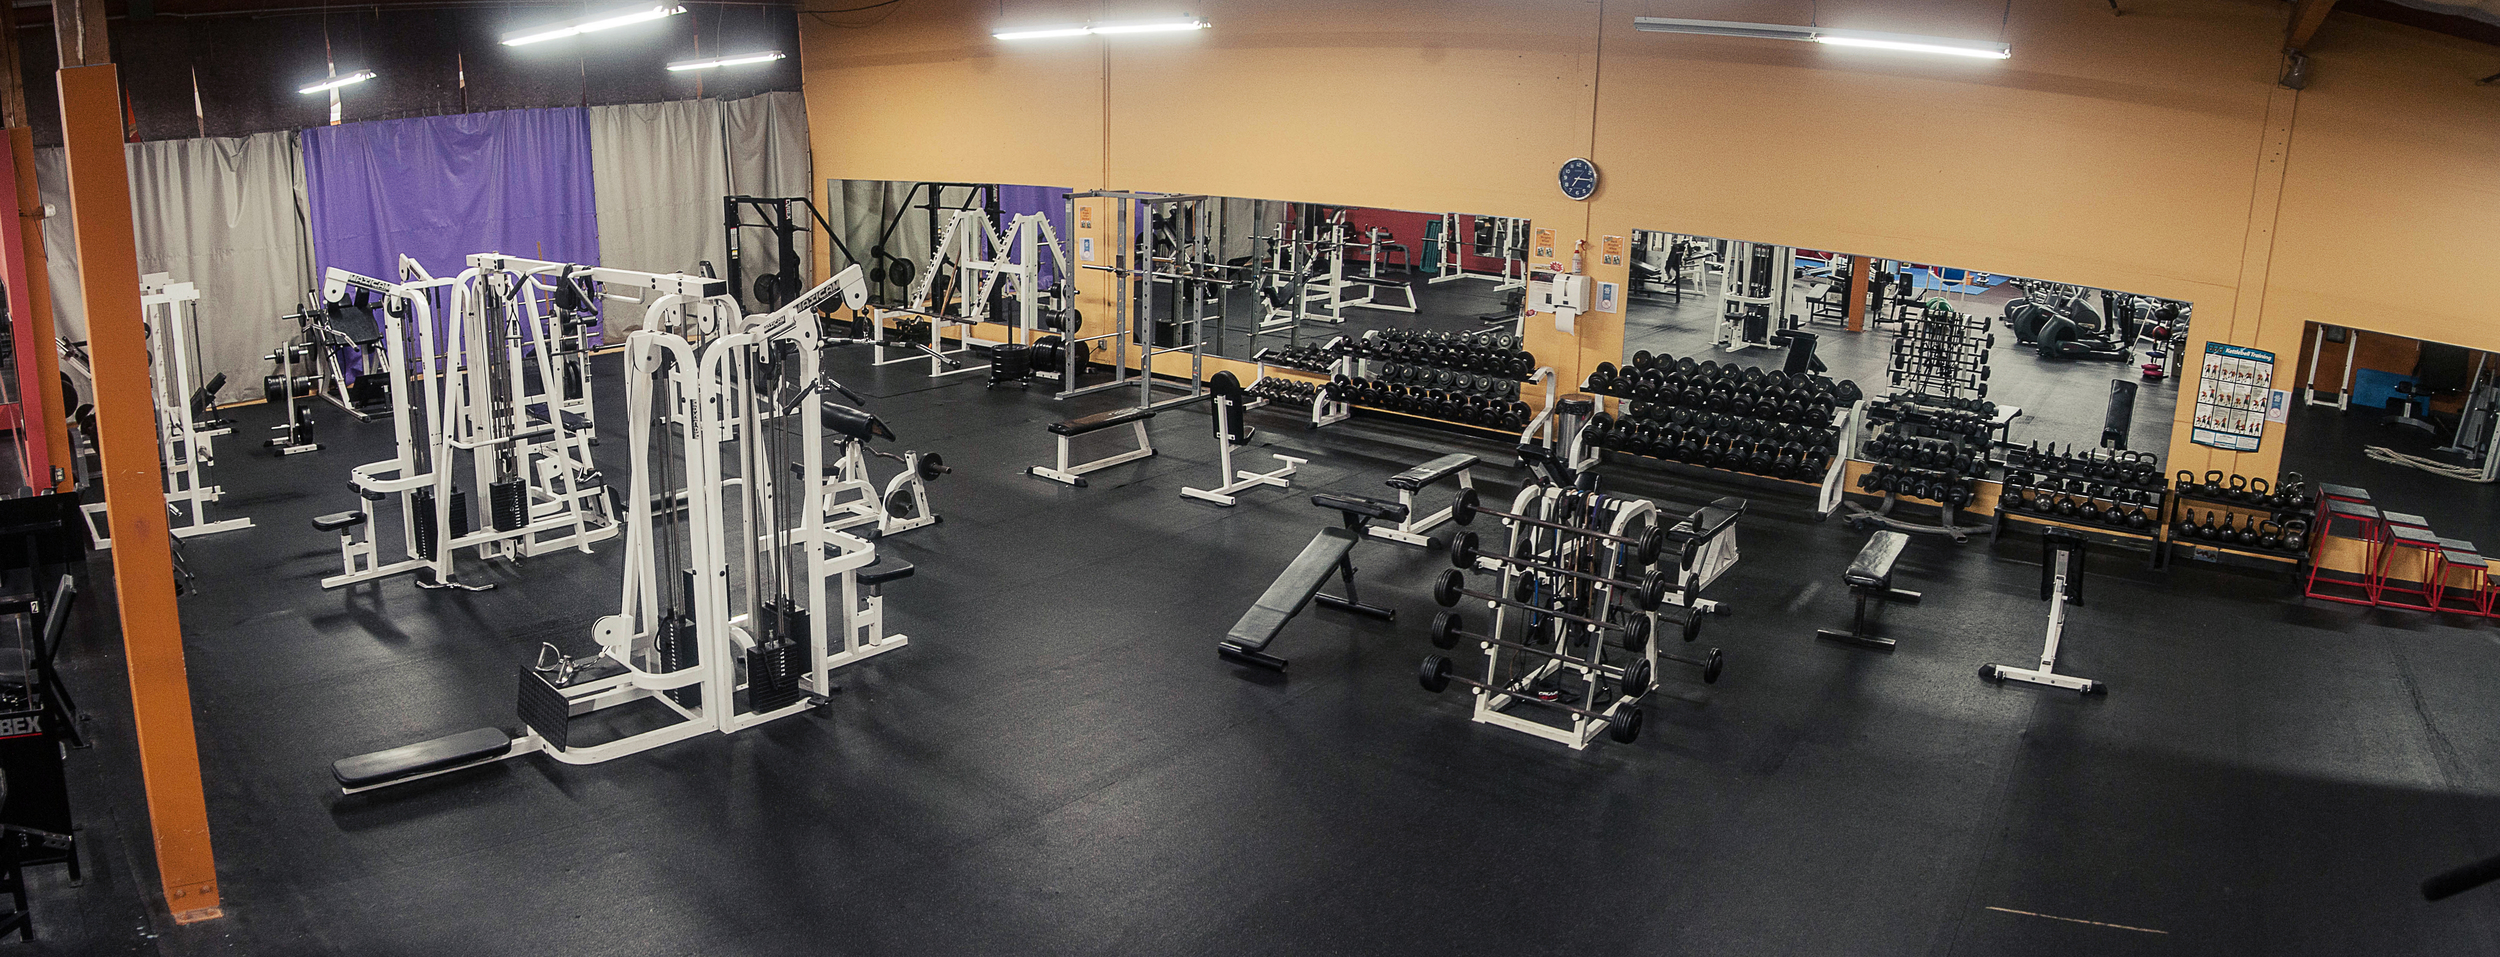 Free Weight Area - Multi-Station Cable MachineAssisted & Unassisted Squat BarsAssisted & Unassisted Bench PressPrecor Functional TrainerDumbbells & BarbellsKettlebellsJump BoxesBattle RopesBosu Balls